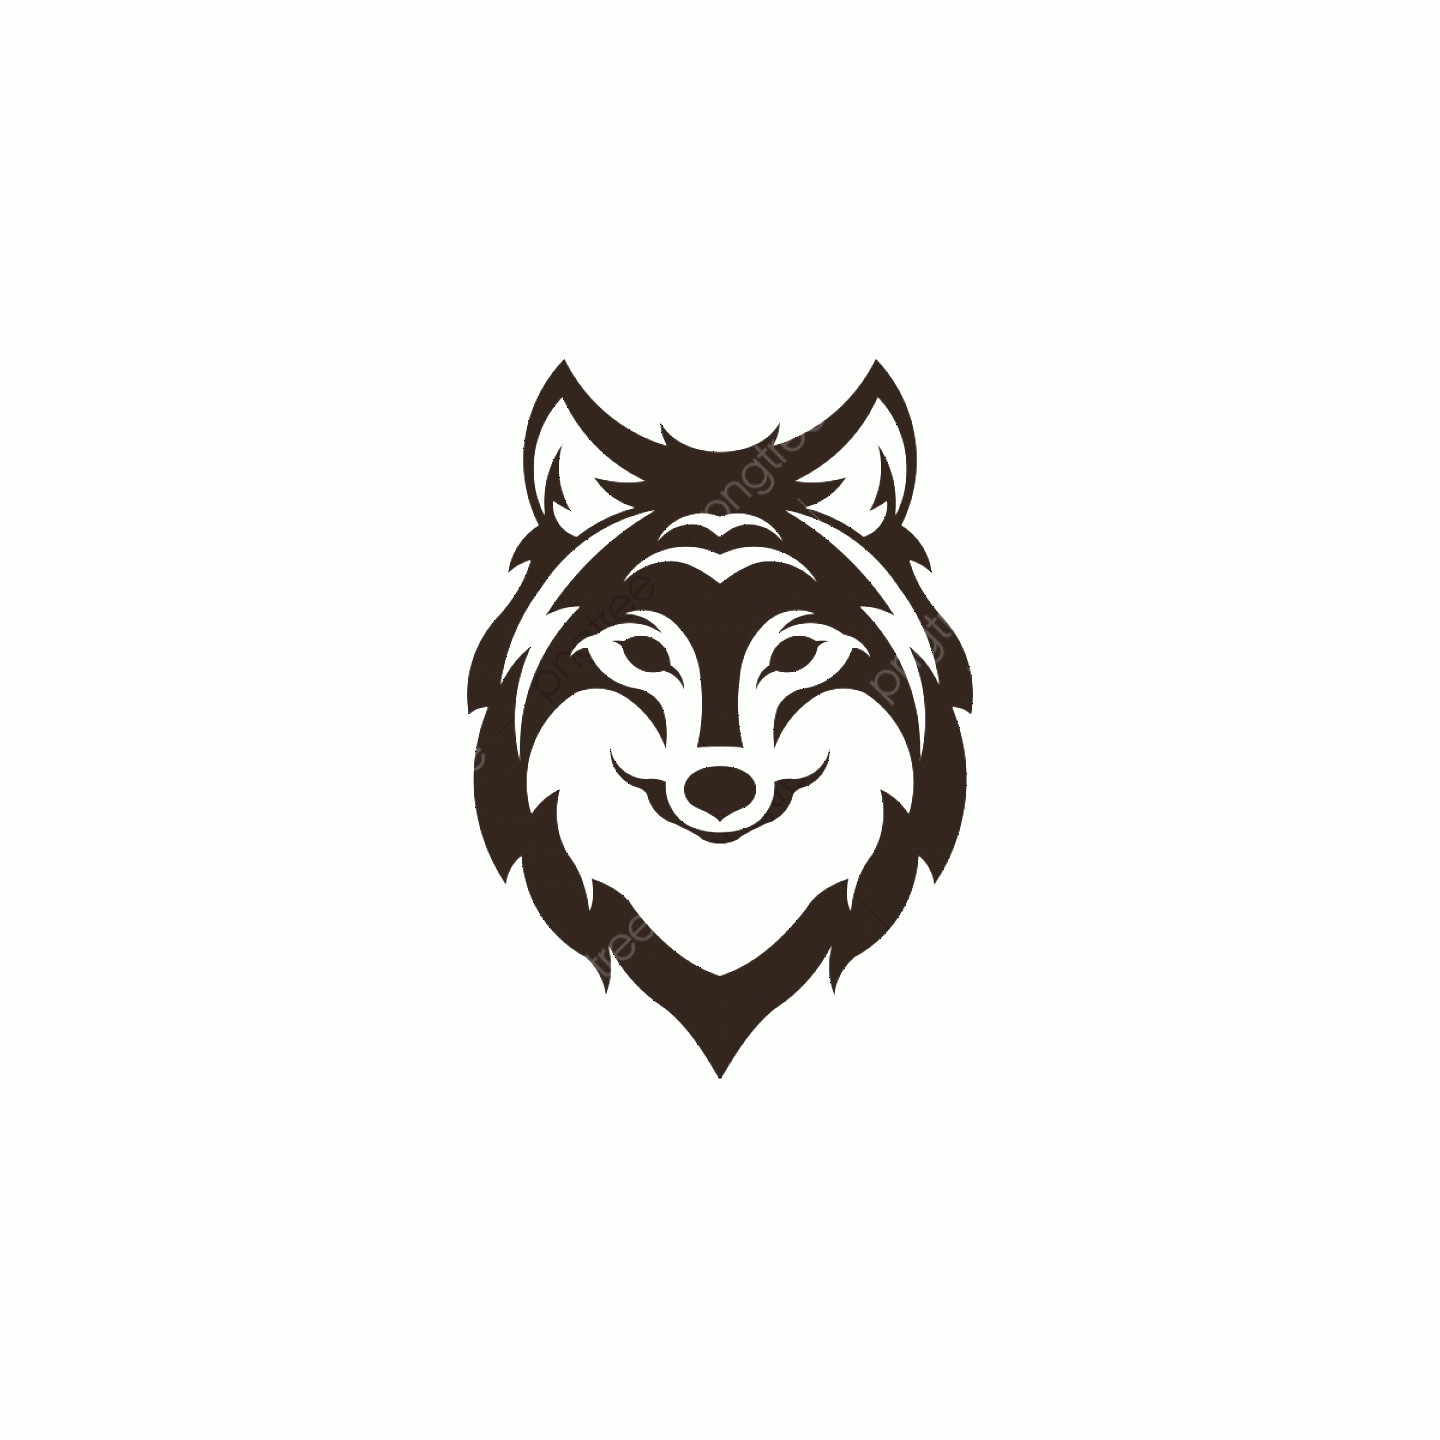 Angry Dog Vector Black And White: Silhouette Of The Wolf Vector Logo Wildlife Wild Wolf Vector Illustration Brush Effect